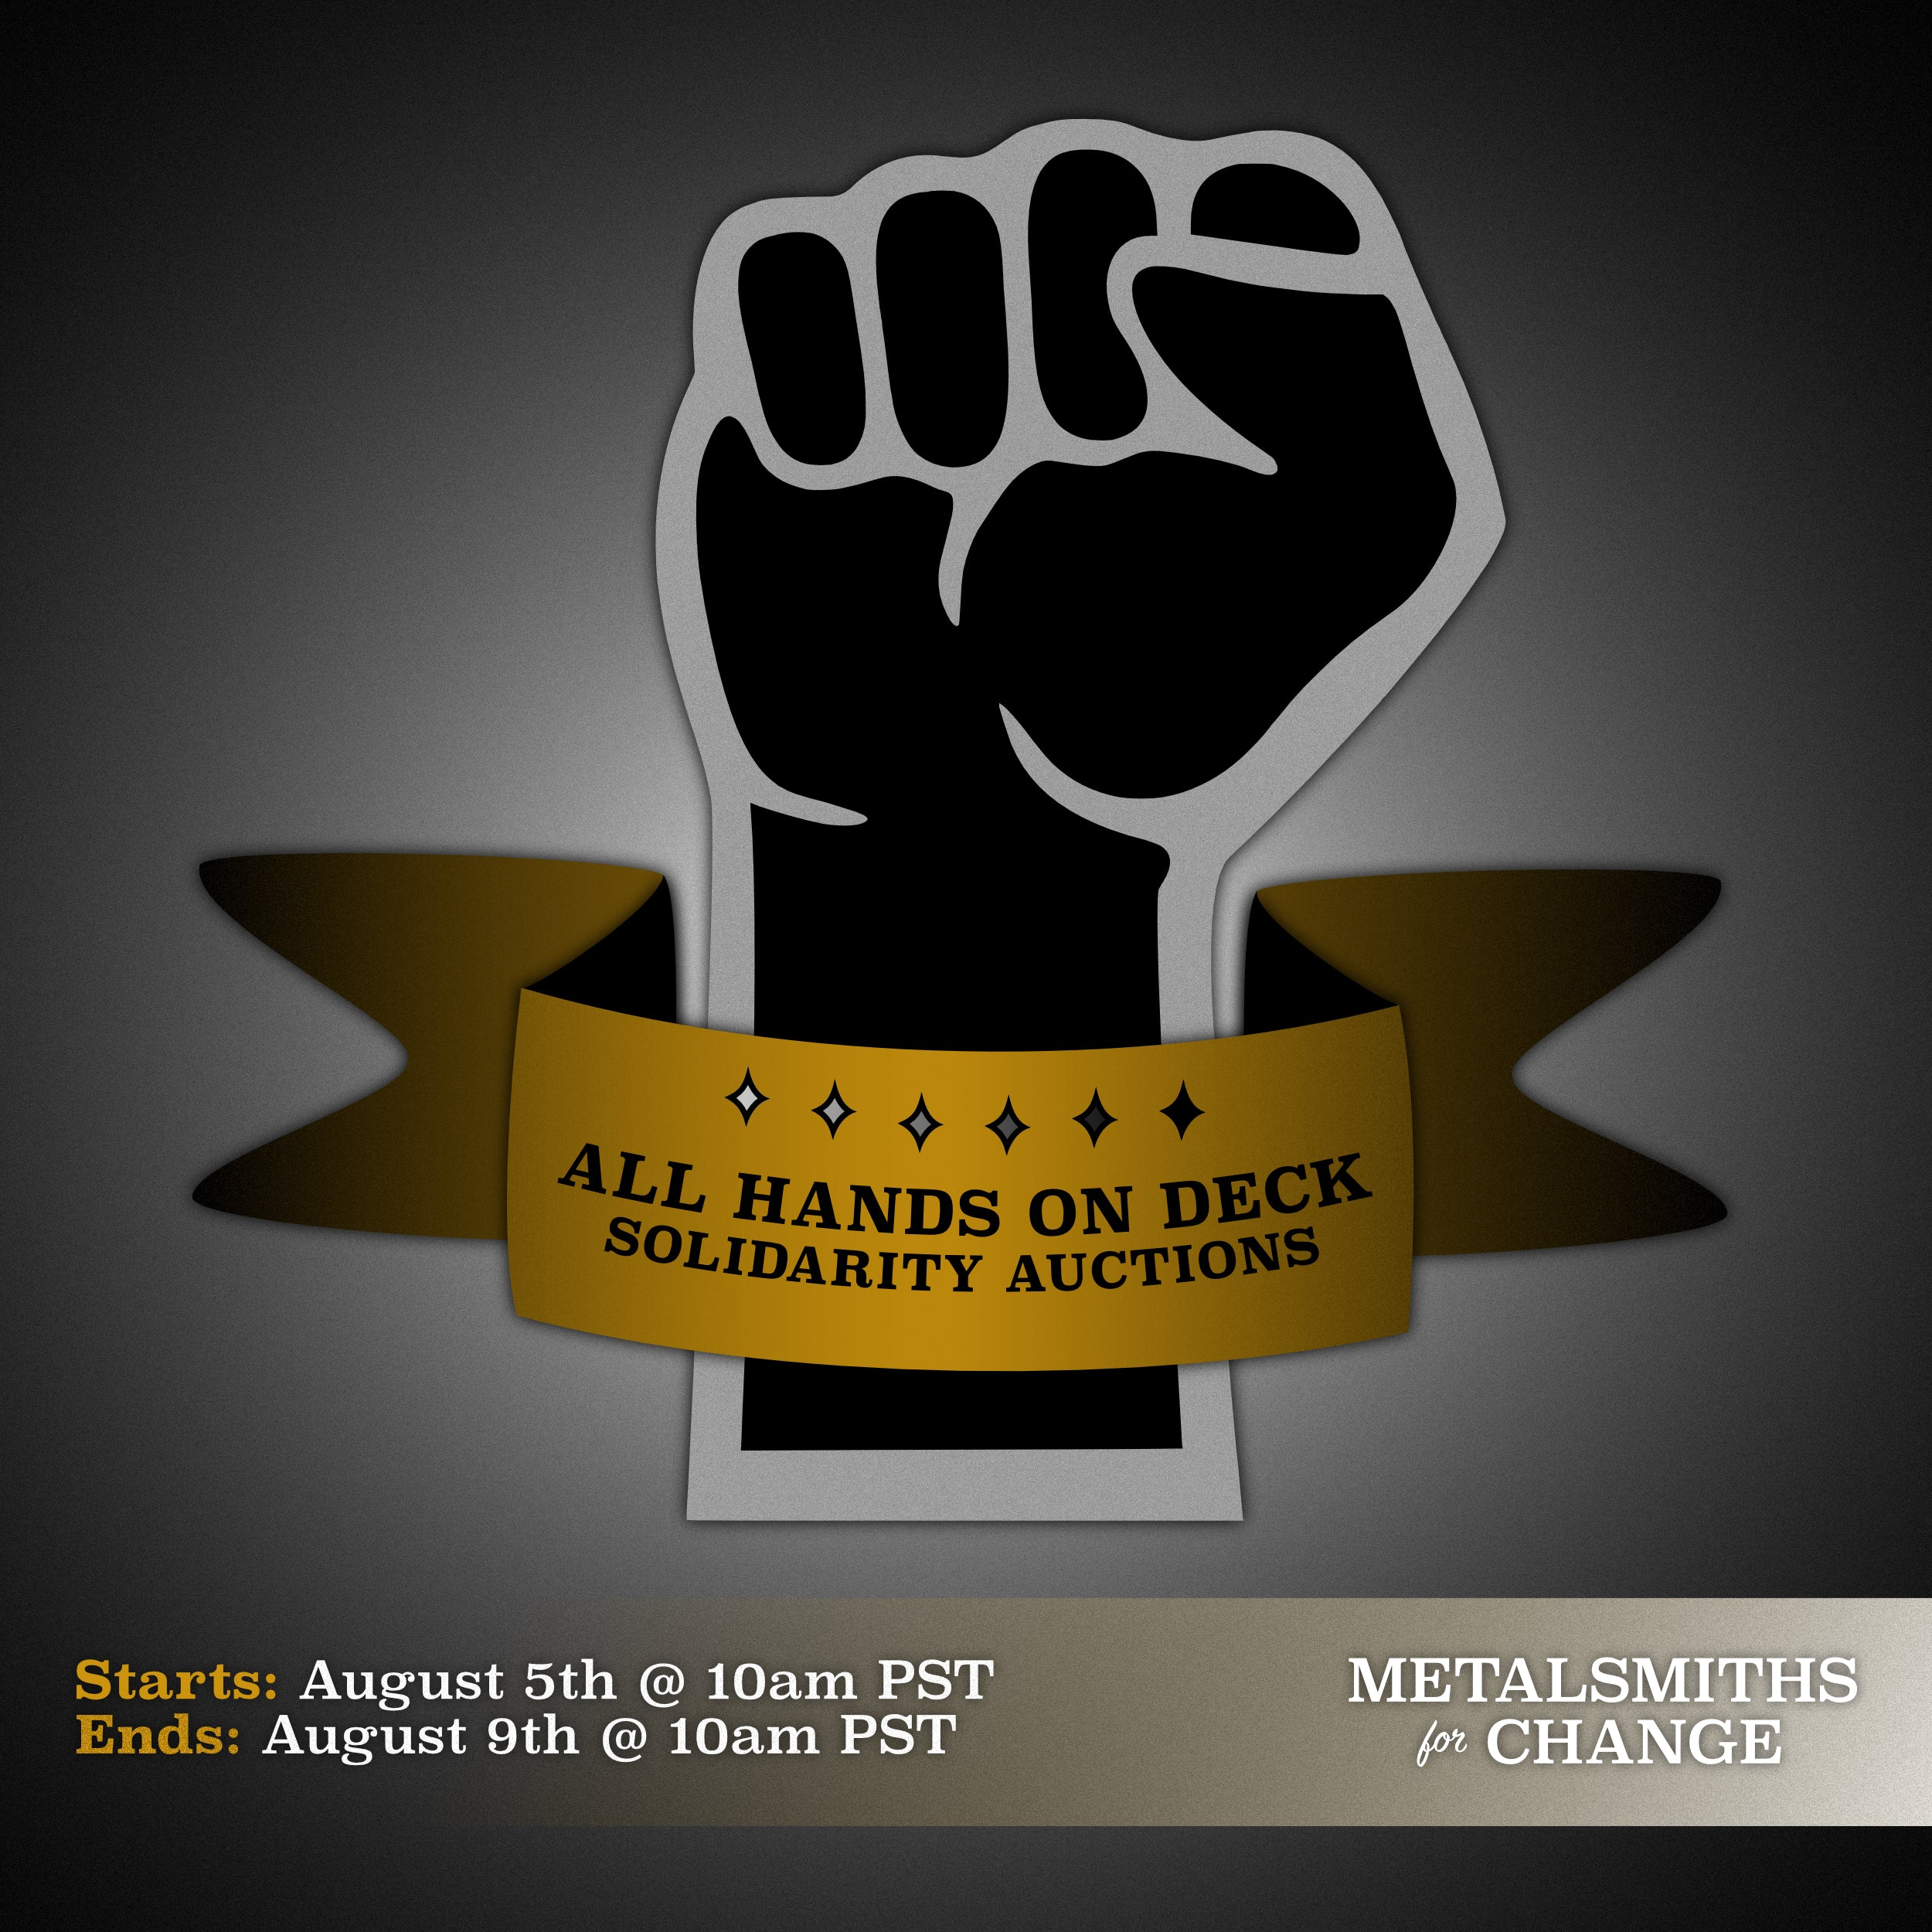 All Hands on Deck Solidarity Auctions